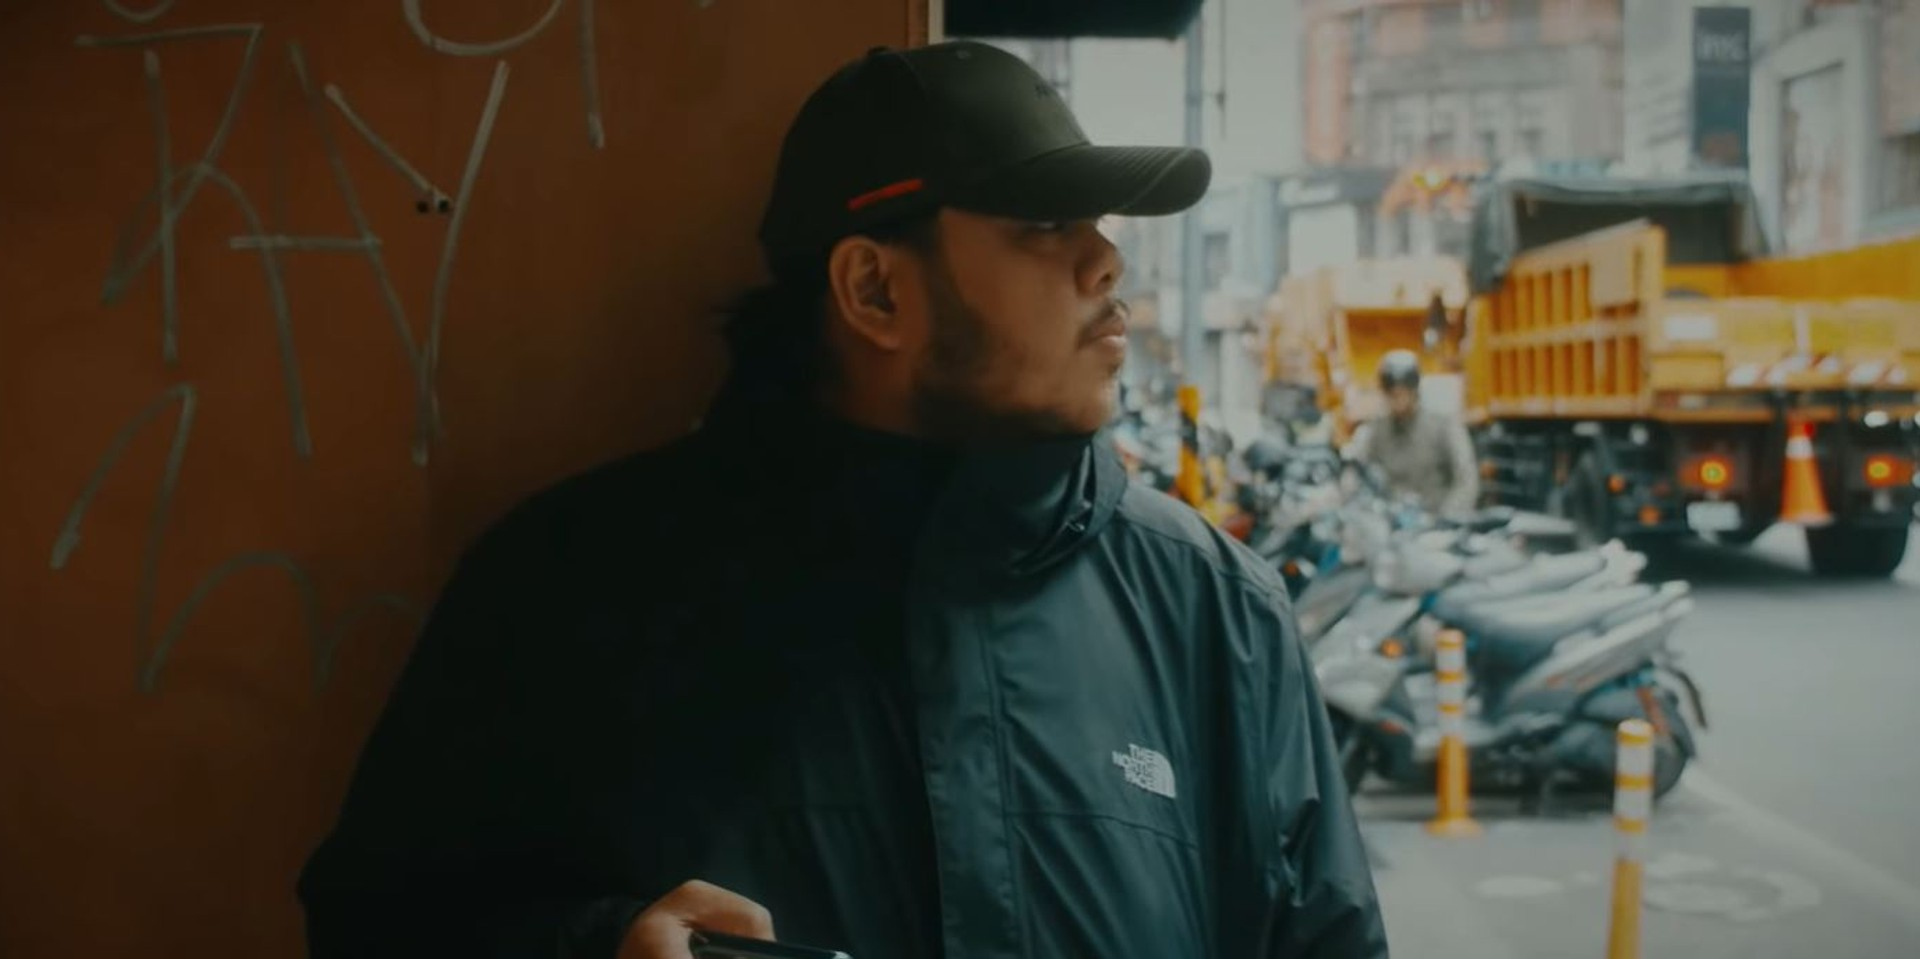 Monty Macalino runs down the streets of Taiwan in Mayonnaise and I Belong to the Zoo 'Pahirapan' music video – watch